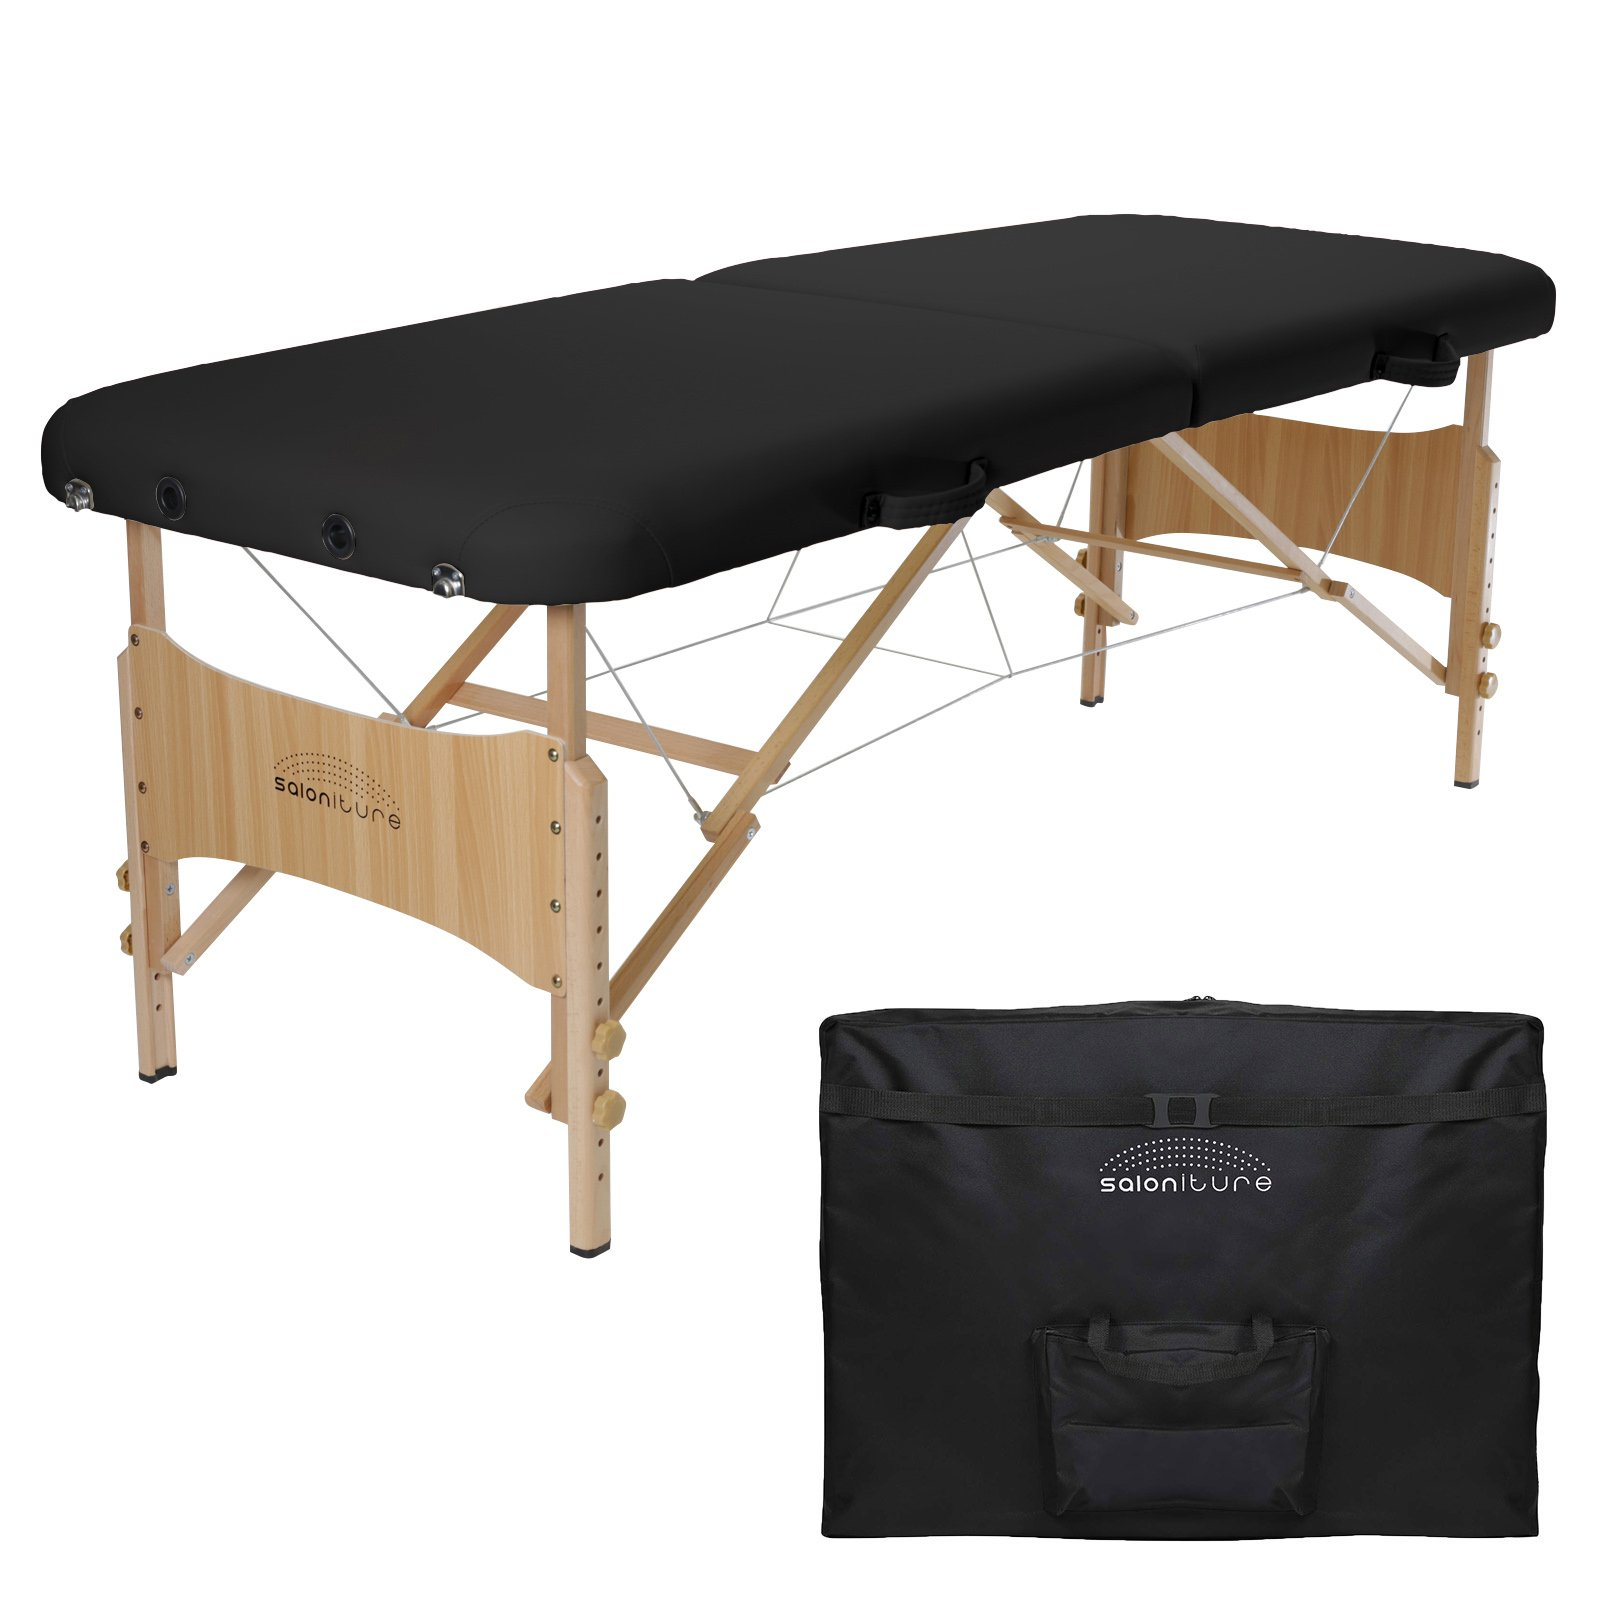 Saloniture Basic Portable Folding Massage Table - Black by Saloniture